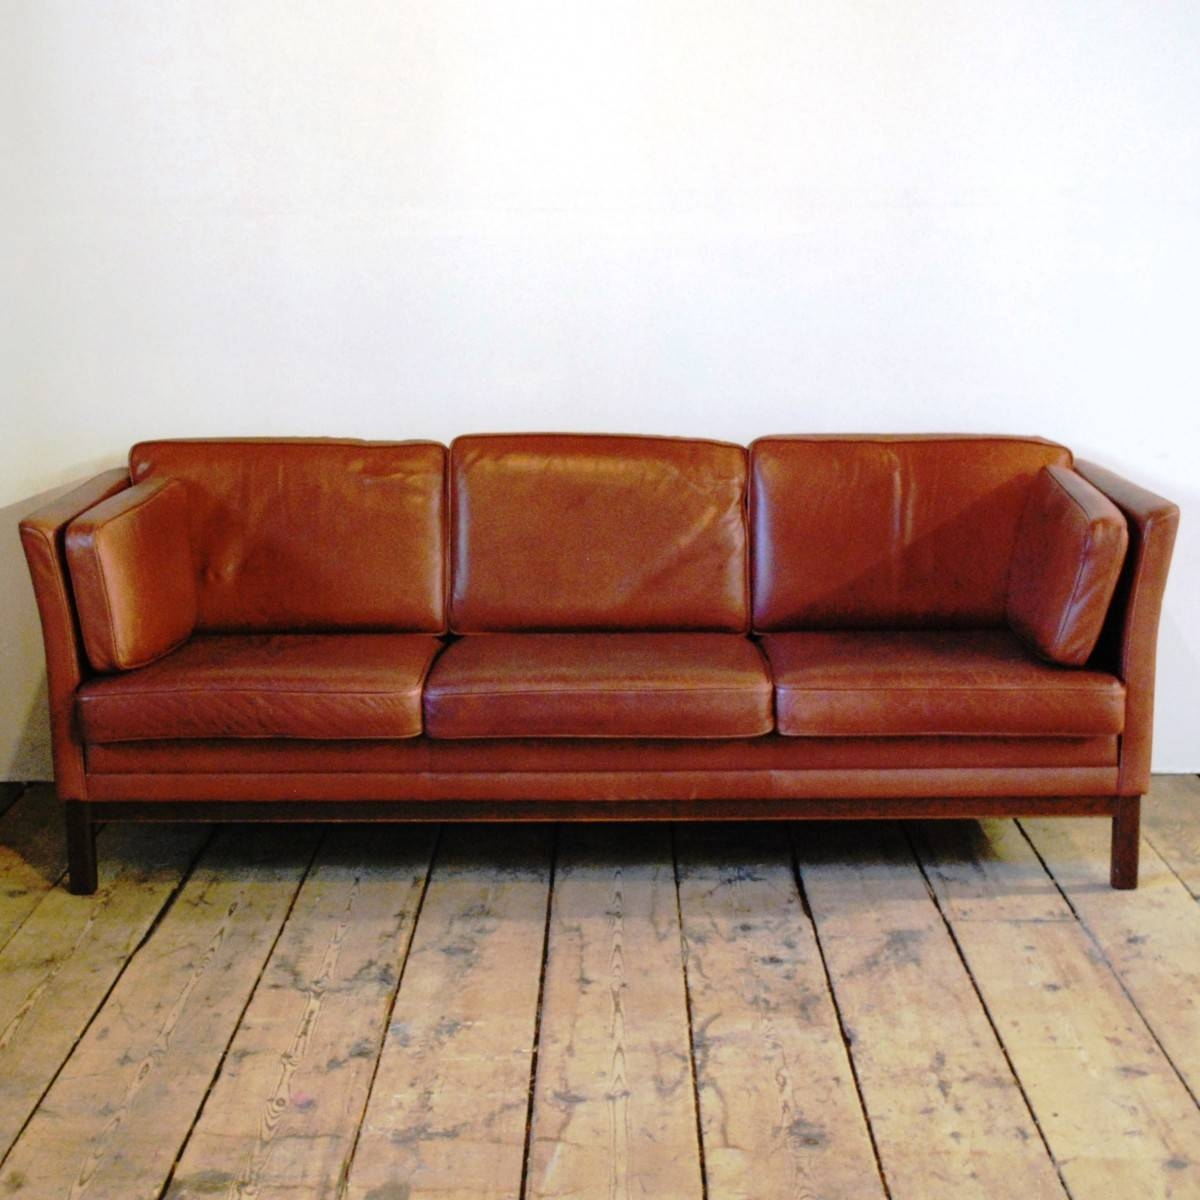 Furnitures: Costco Couch | Full Grain Leather Sofa | Burgundy inside Full Grain Leather Sofas (Image 25 of 30)